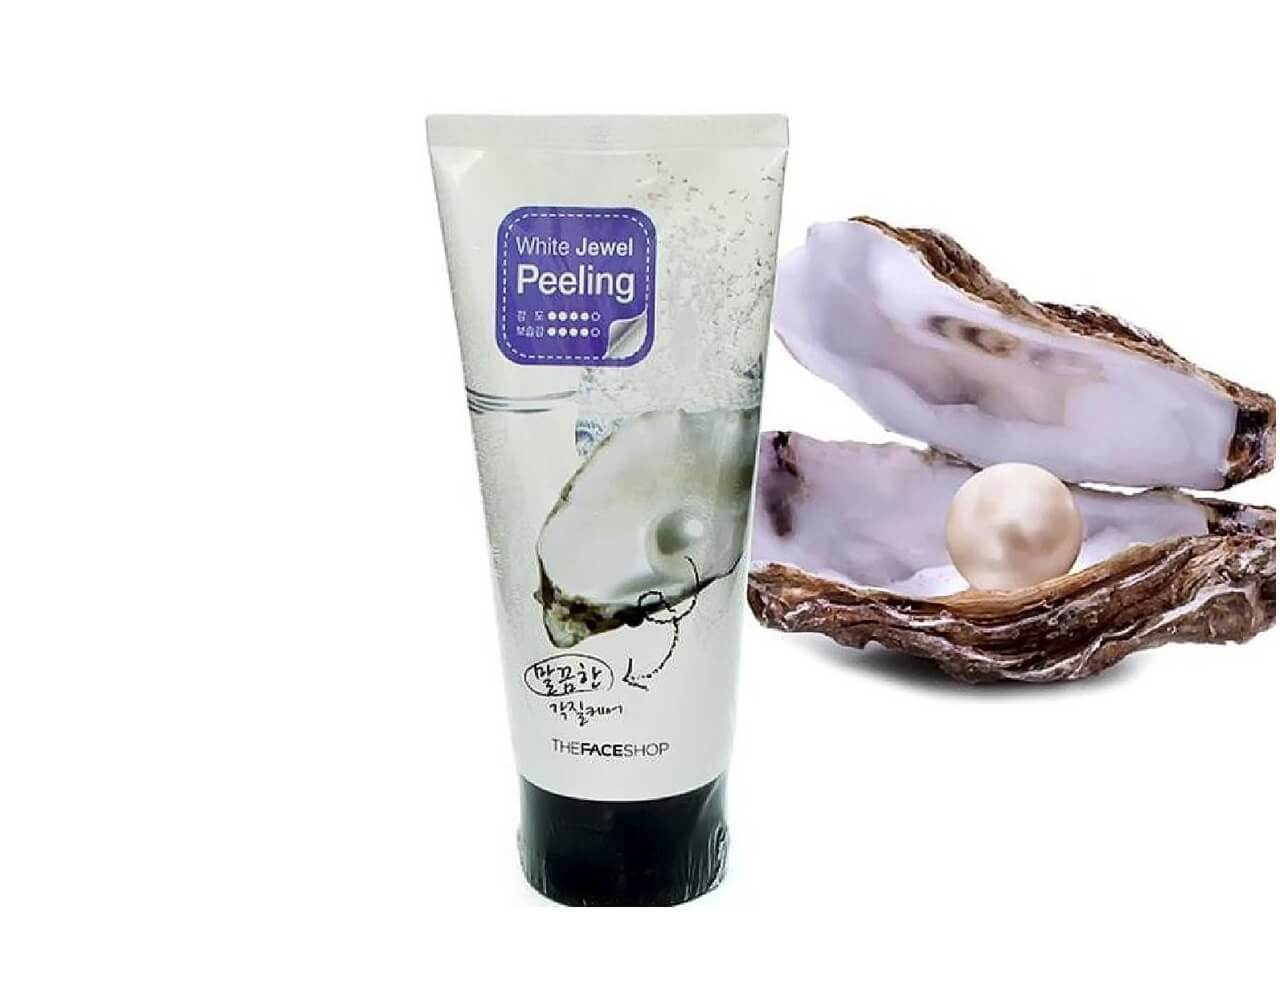 Thefaceshop Smart Peeling White Jewel Peeling